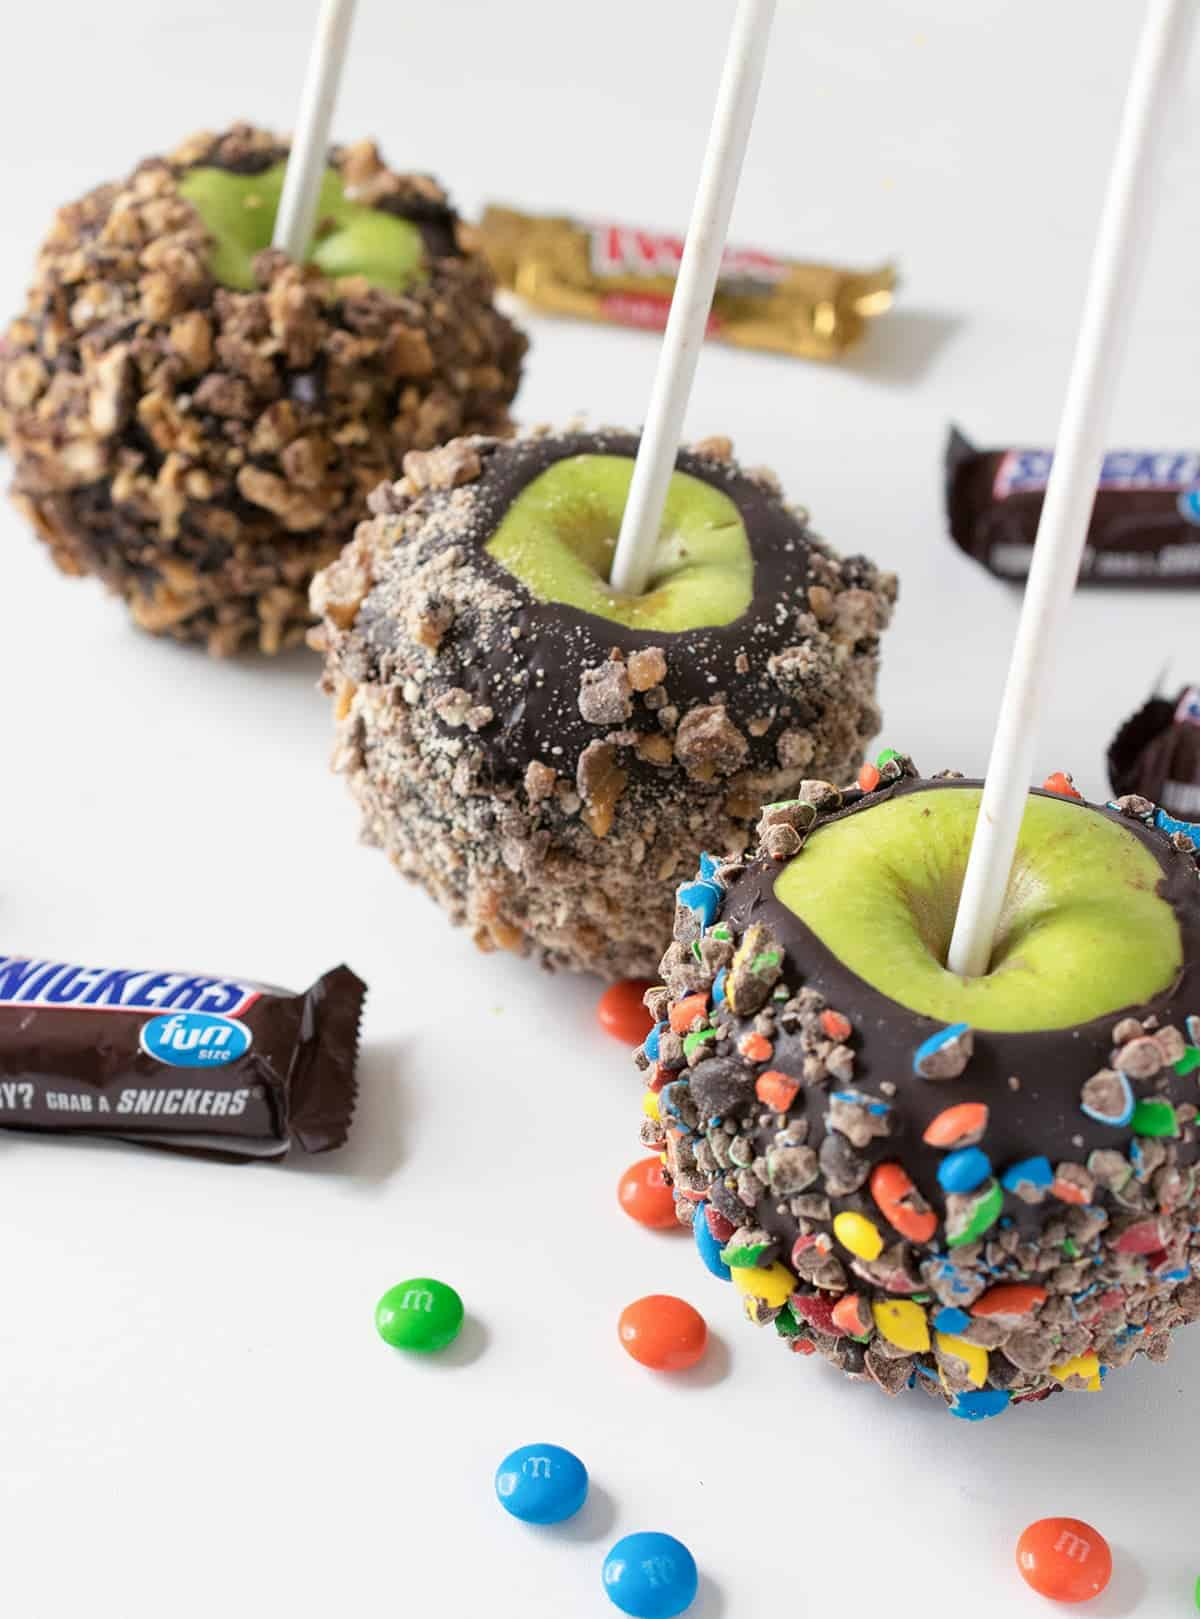 Gourmet candy apples cloaked in chocolate and rolled in assorted candies on white lollipop sticks